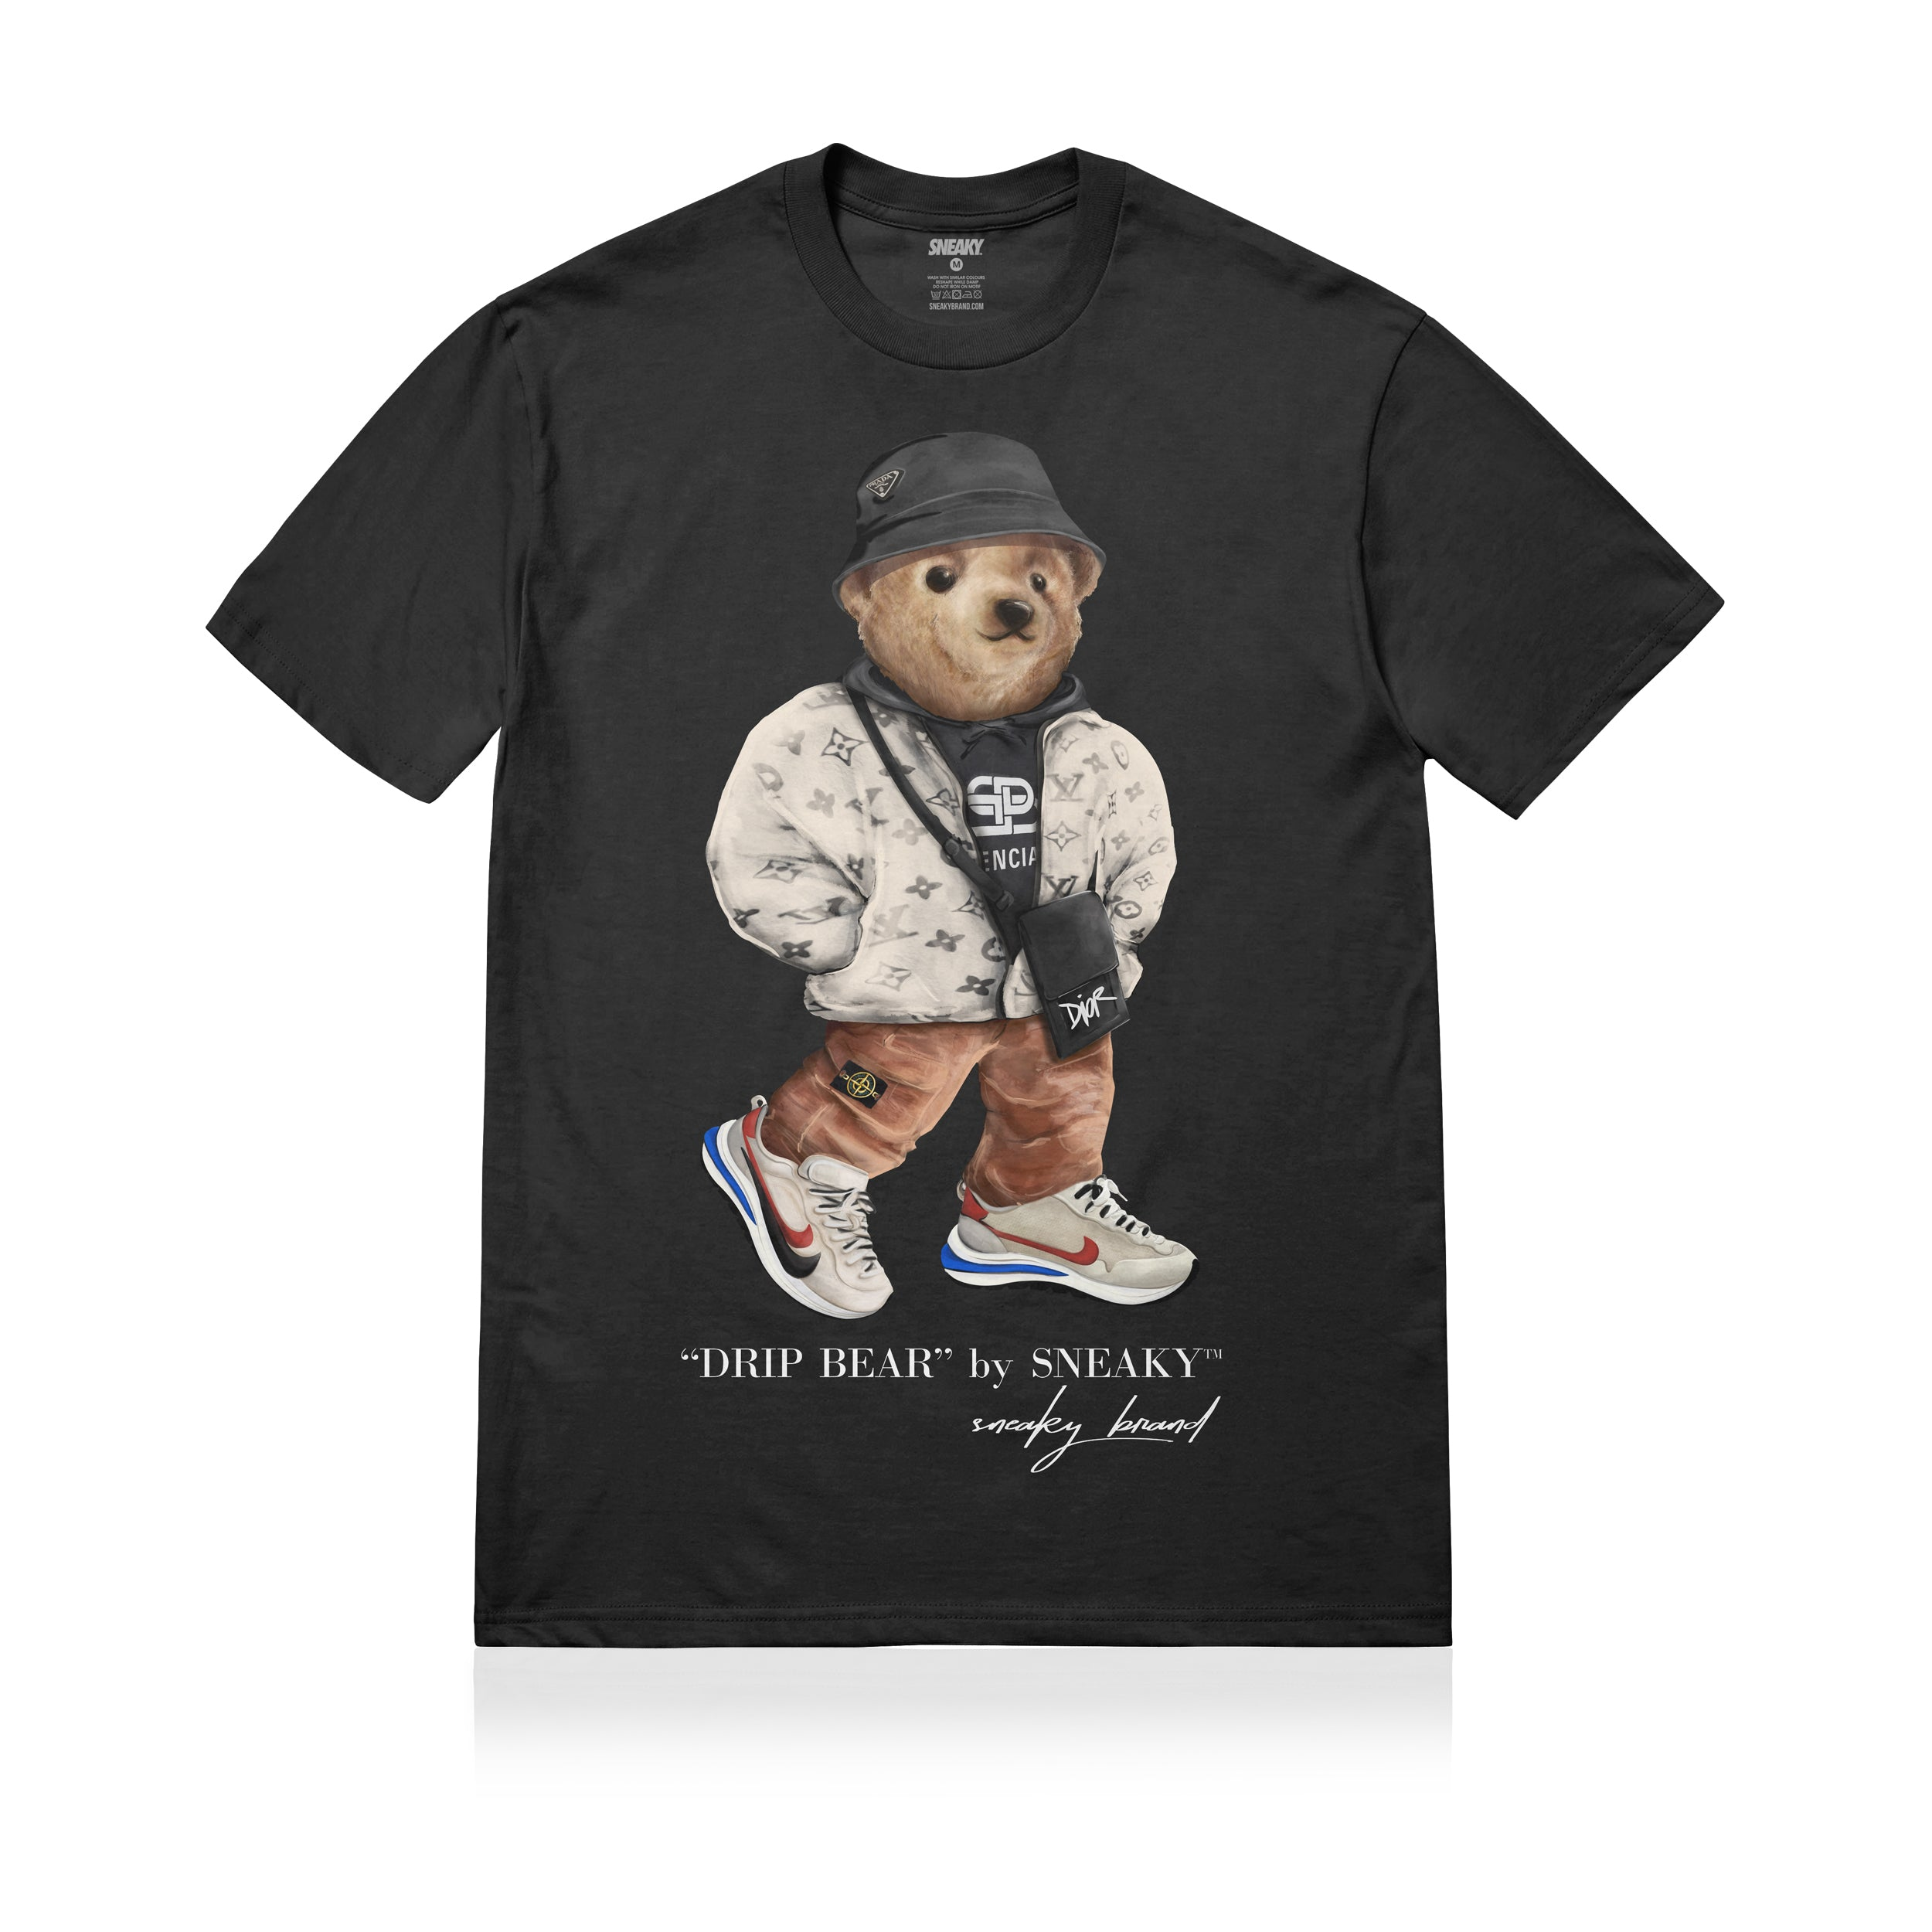 Sneaky Drip Bear Unisex Adult T-shirt Black